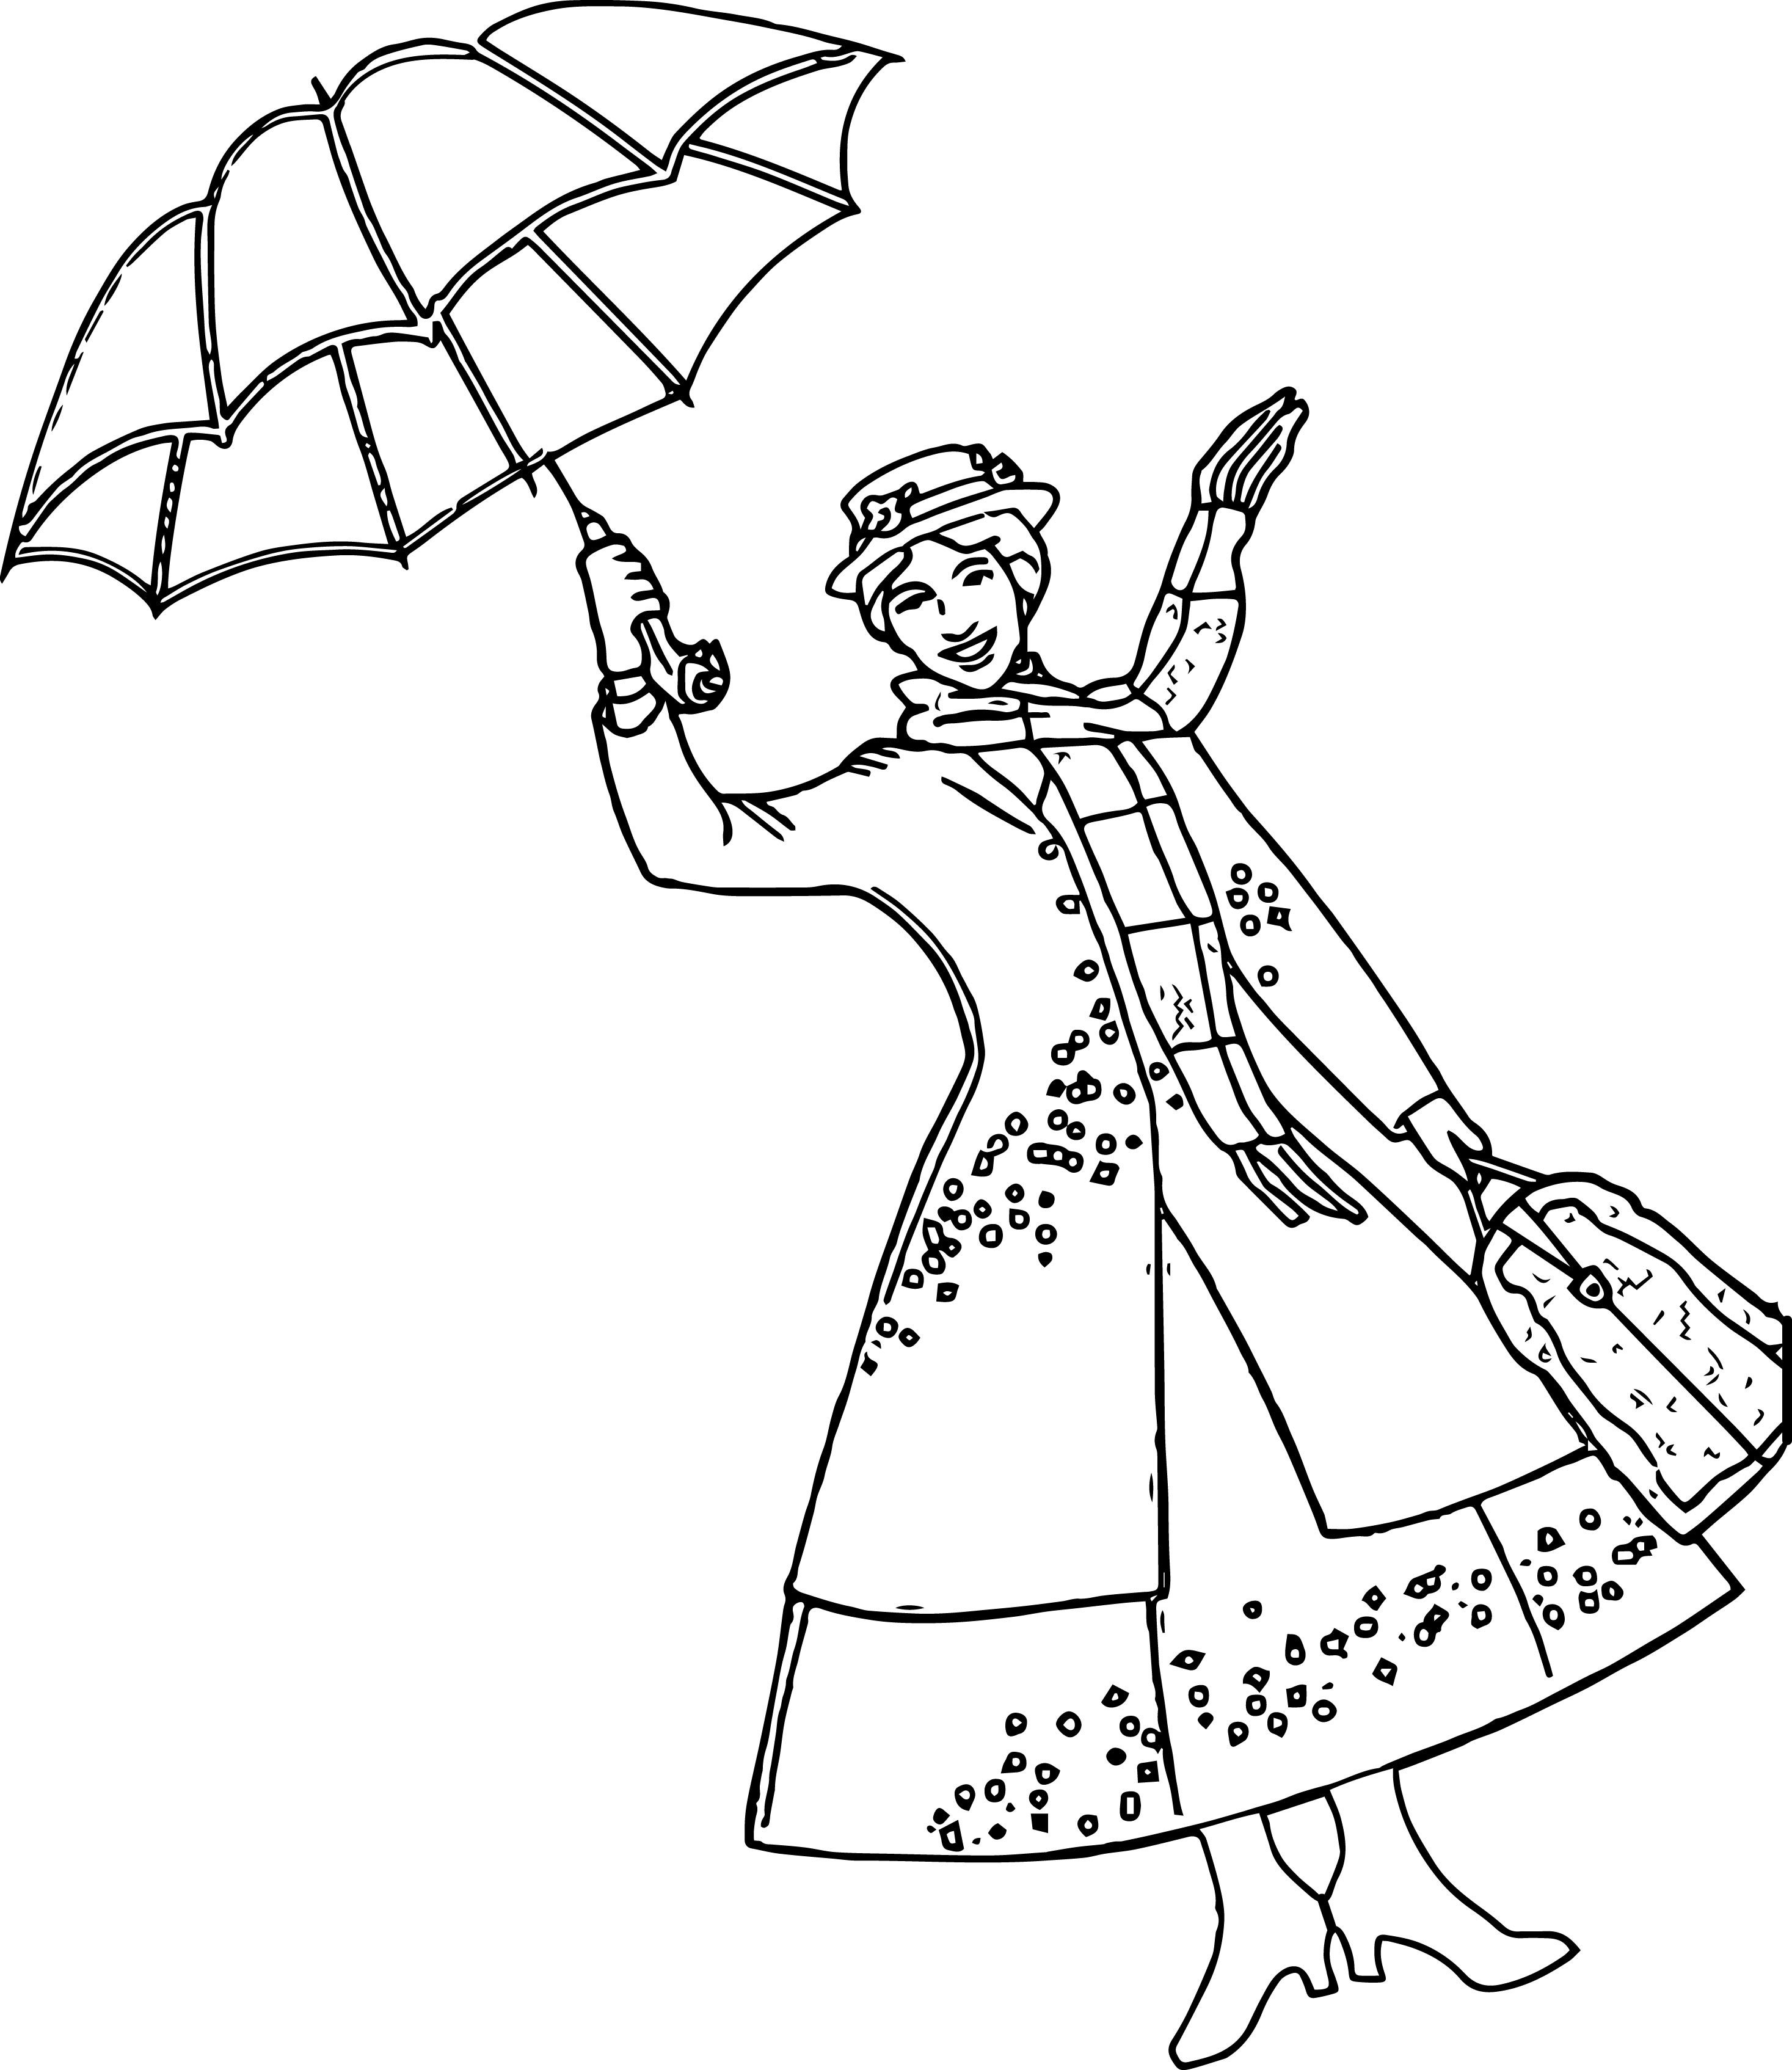 mary poppins coloring pages # 2